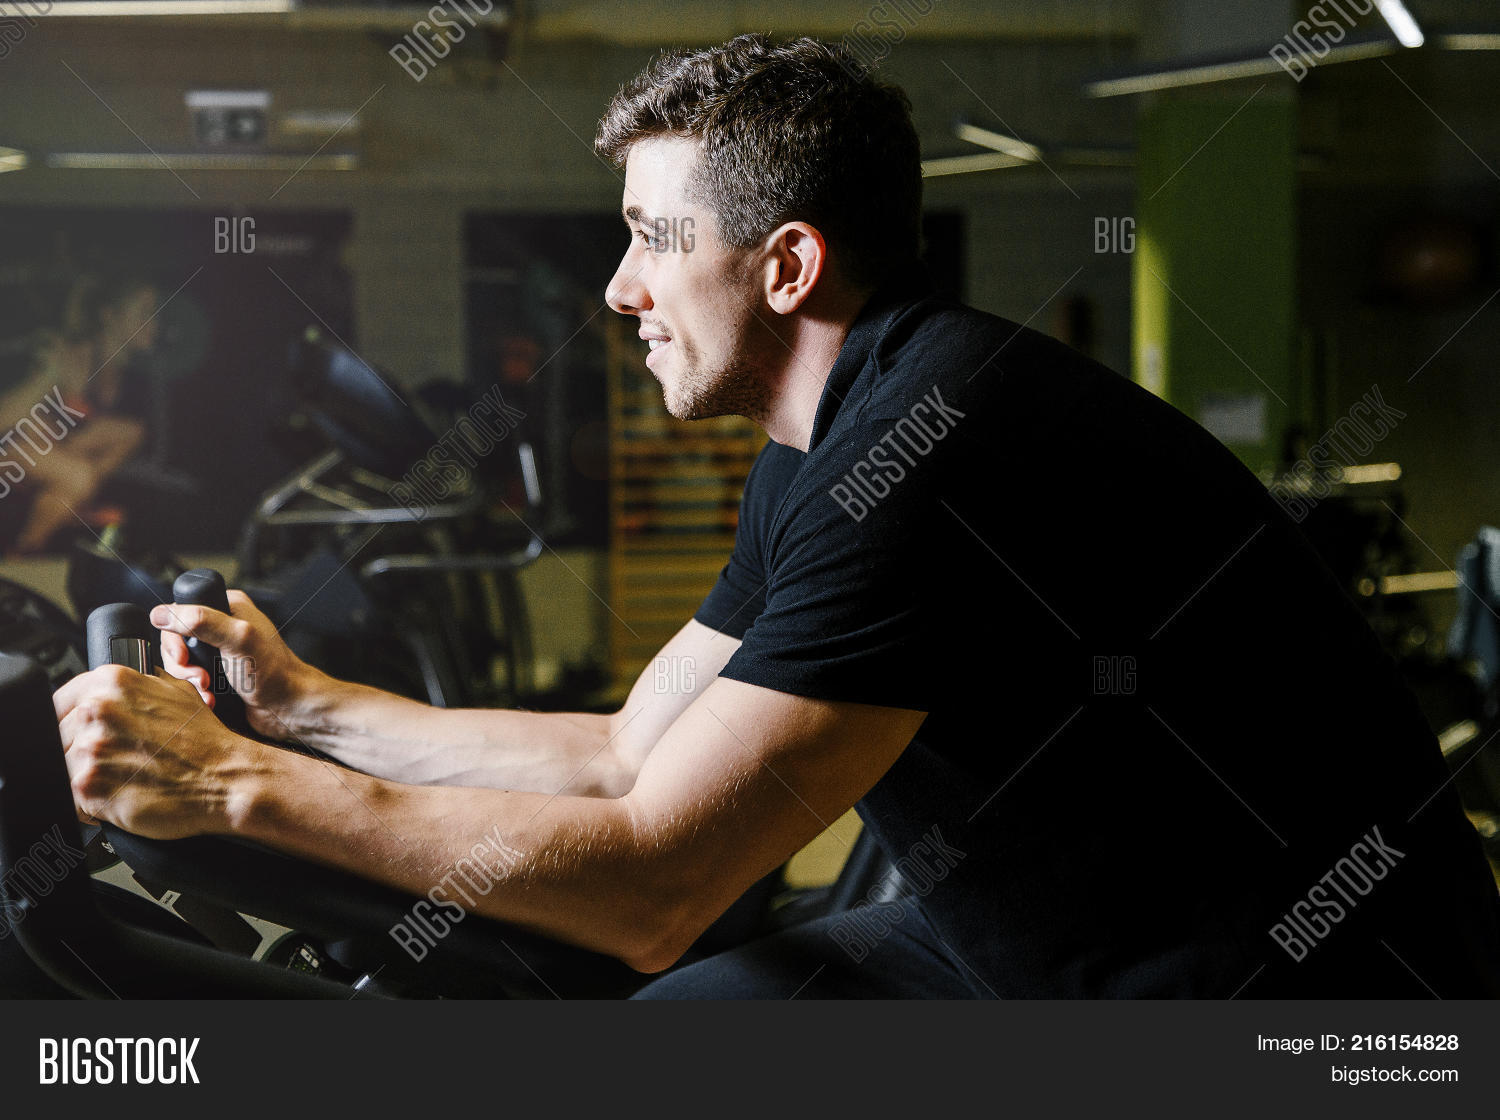 Boy On Stationary Bike Man Engaged Image Photo Bigstock